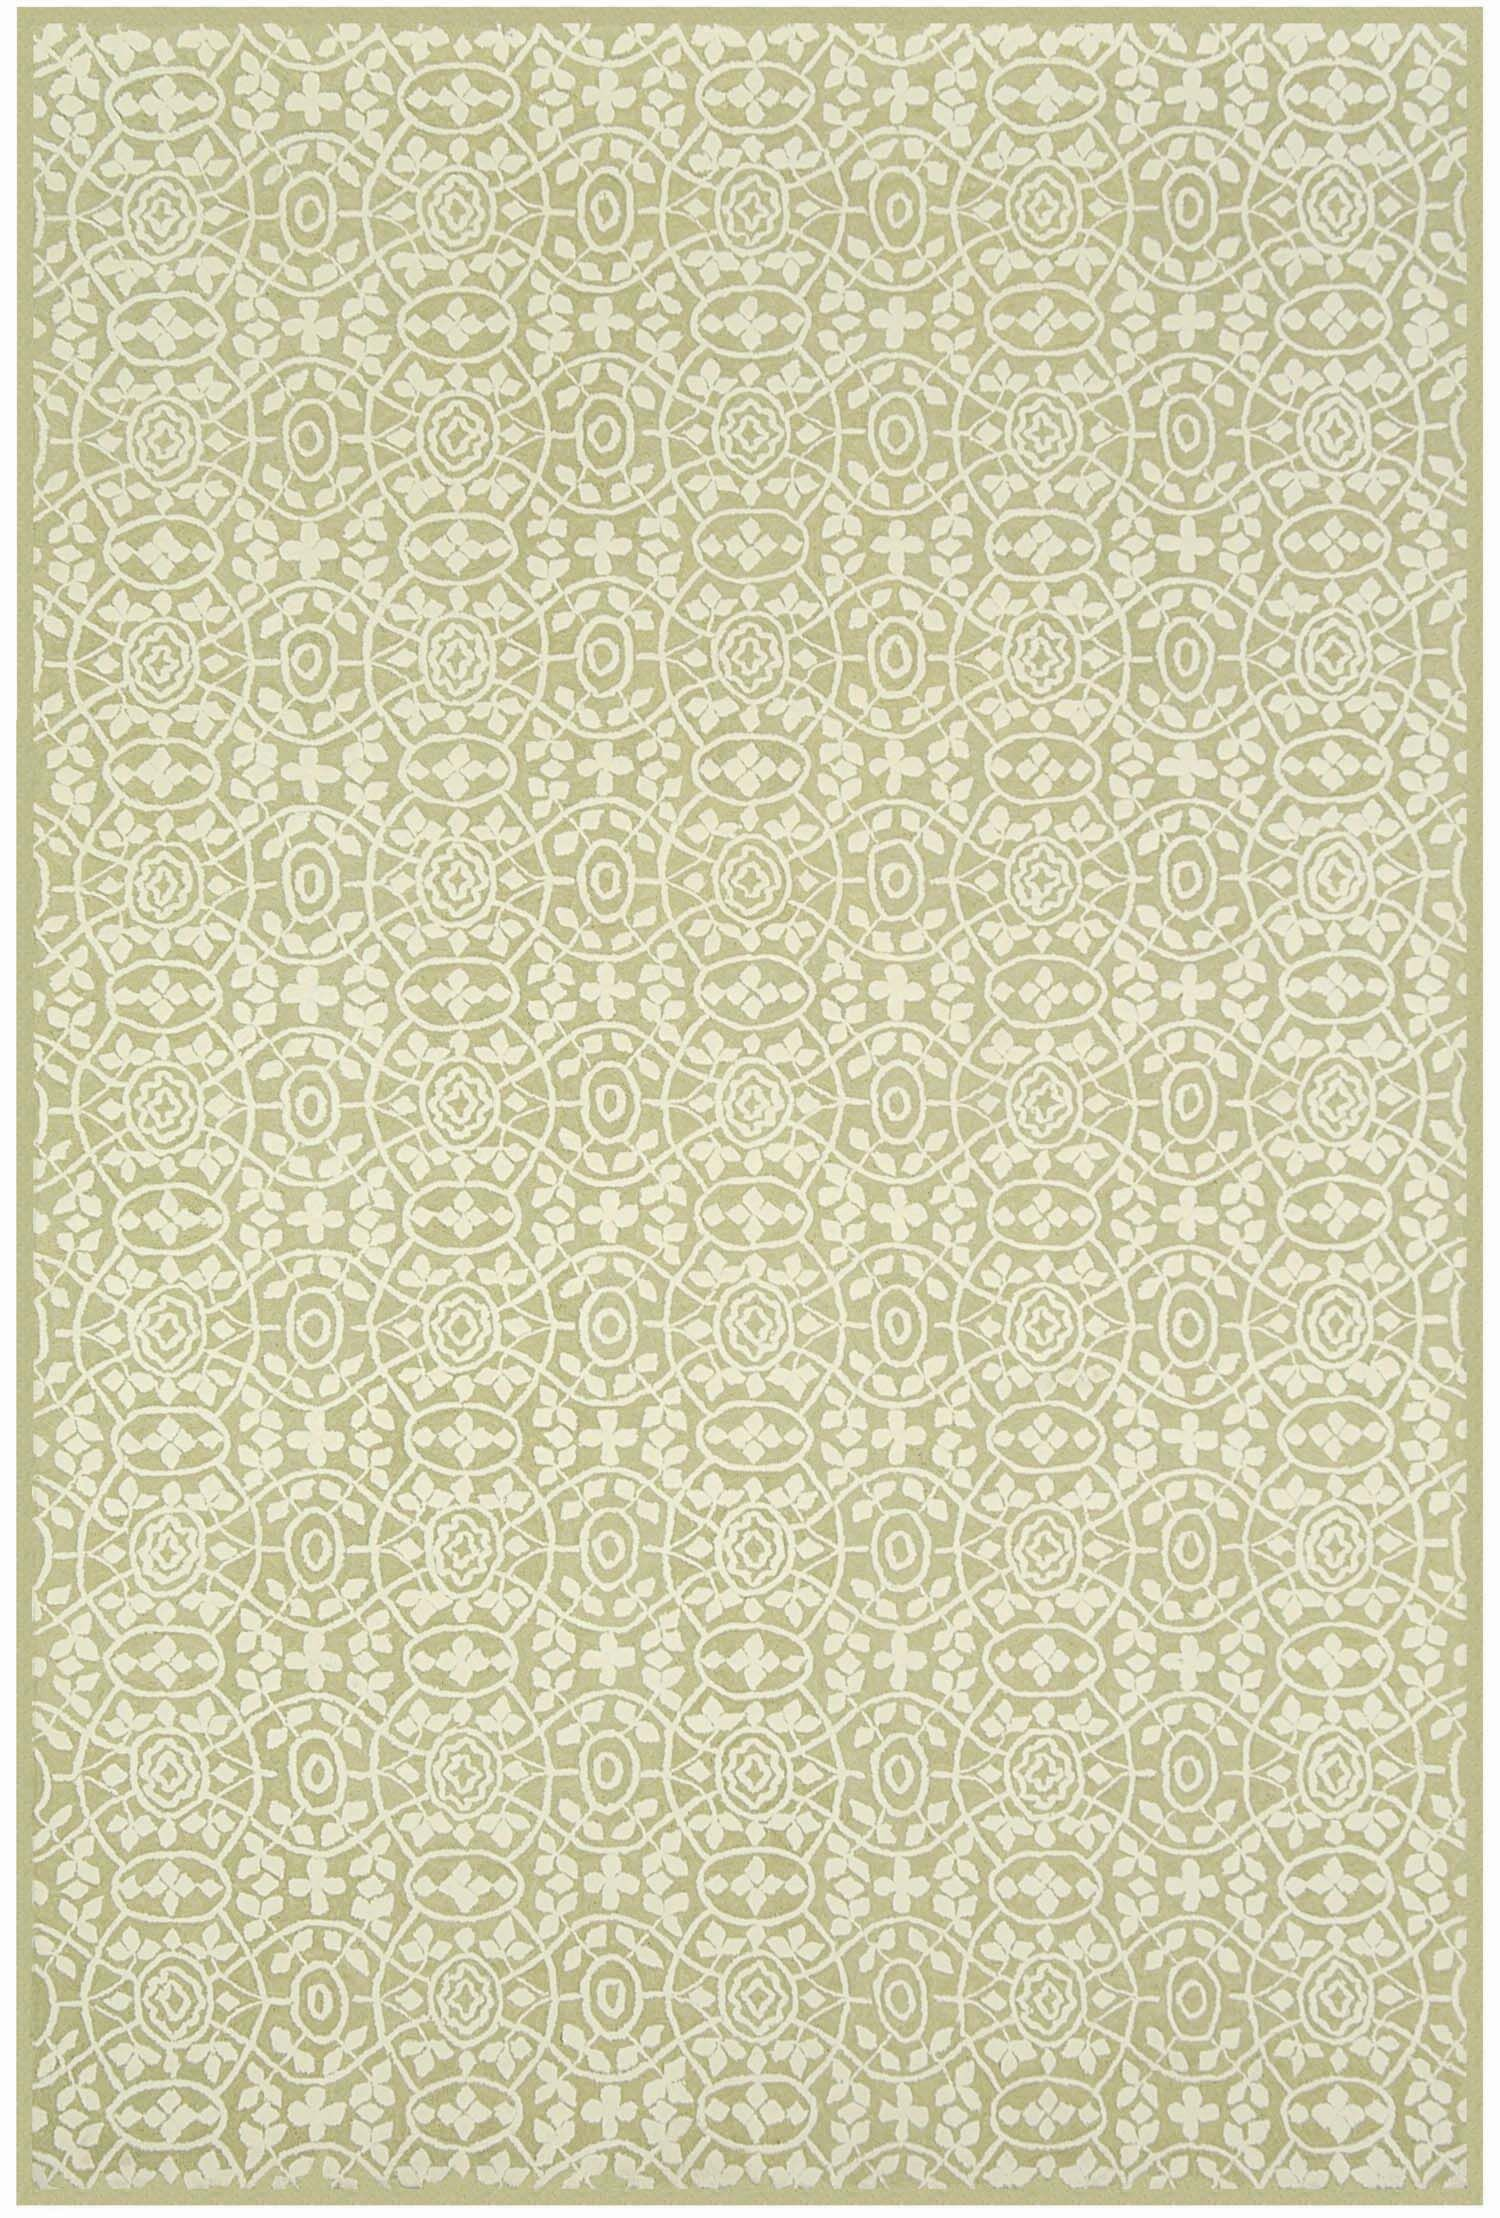 Bloomery Hand-Hooked Cotton Beige Area Rug Rug Size: Rectangle 3'9